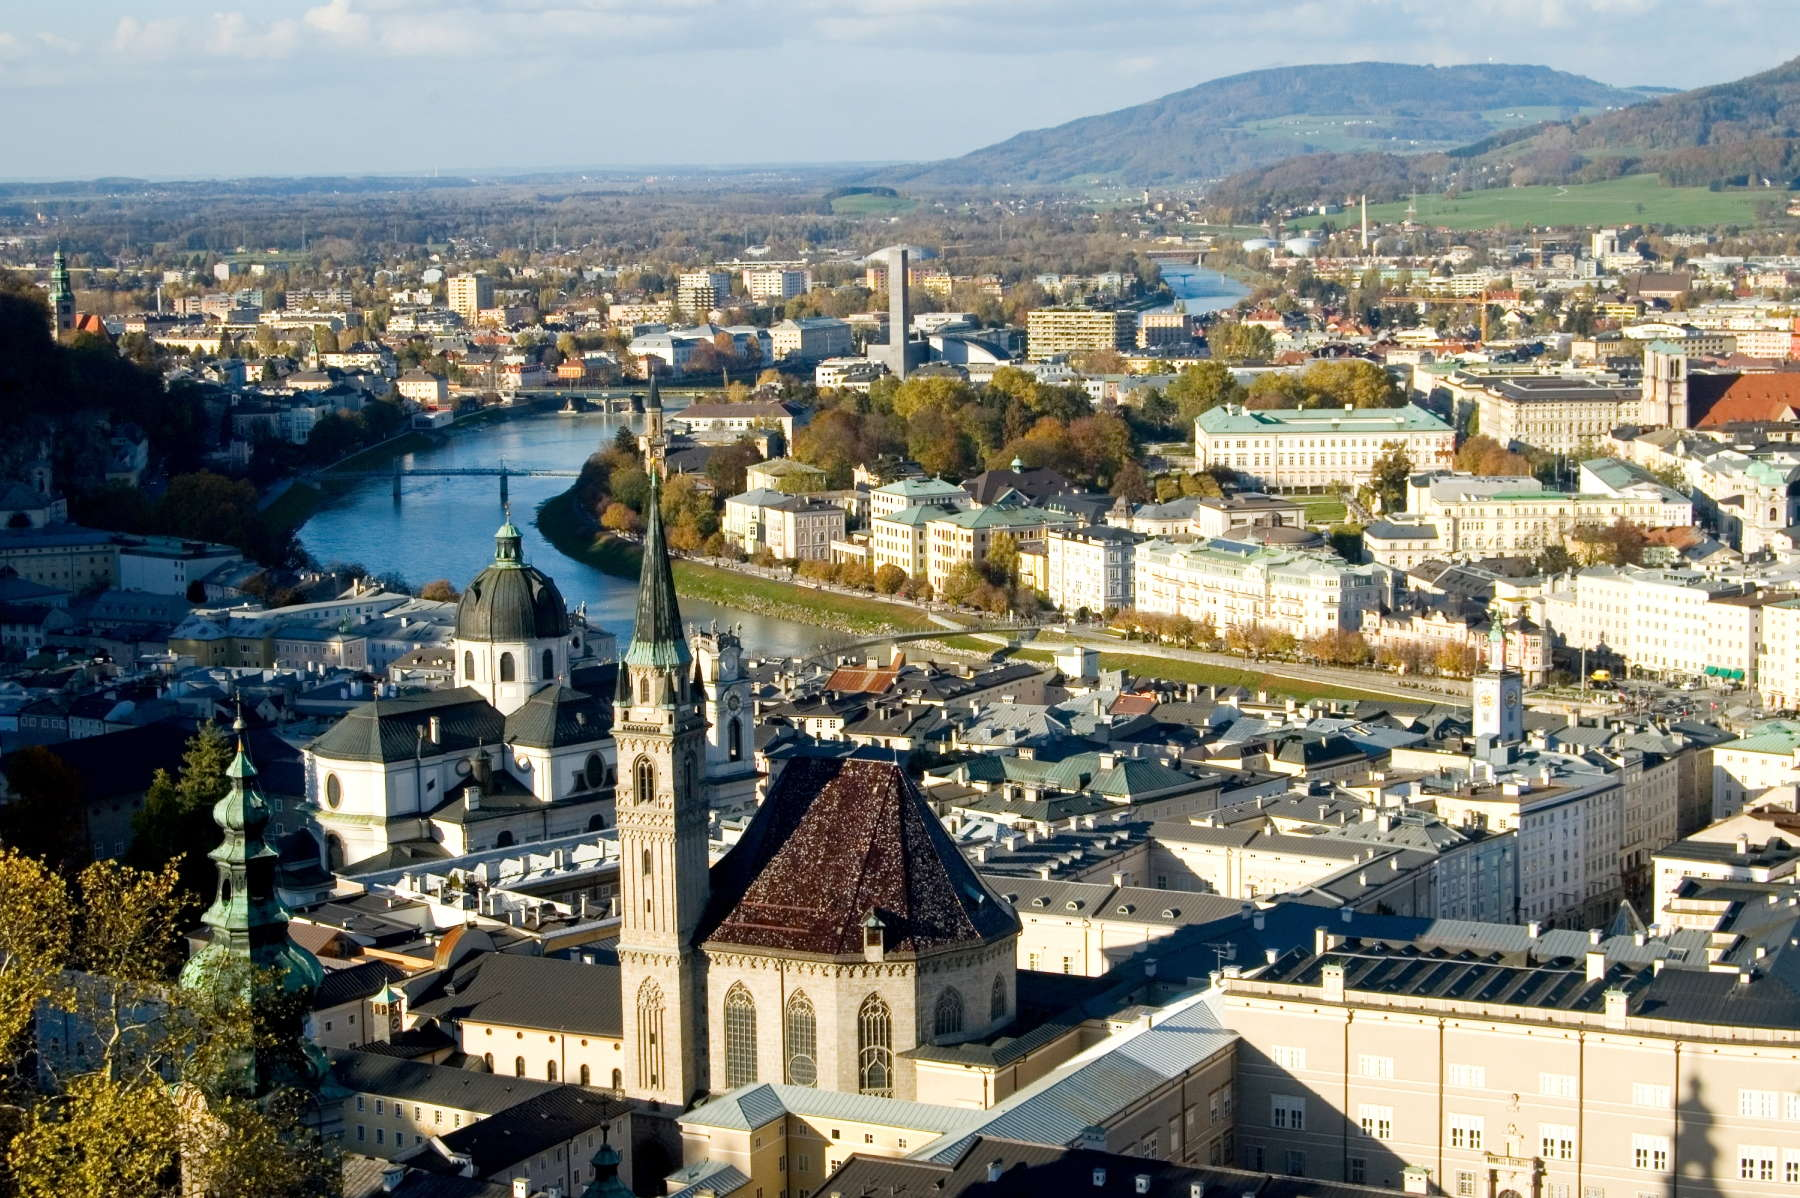 Salzburg is an enchanting city